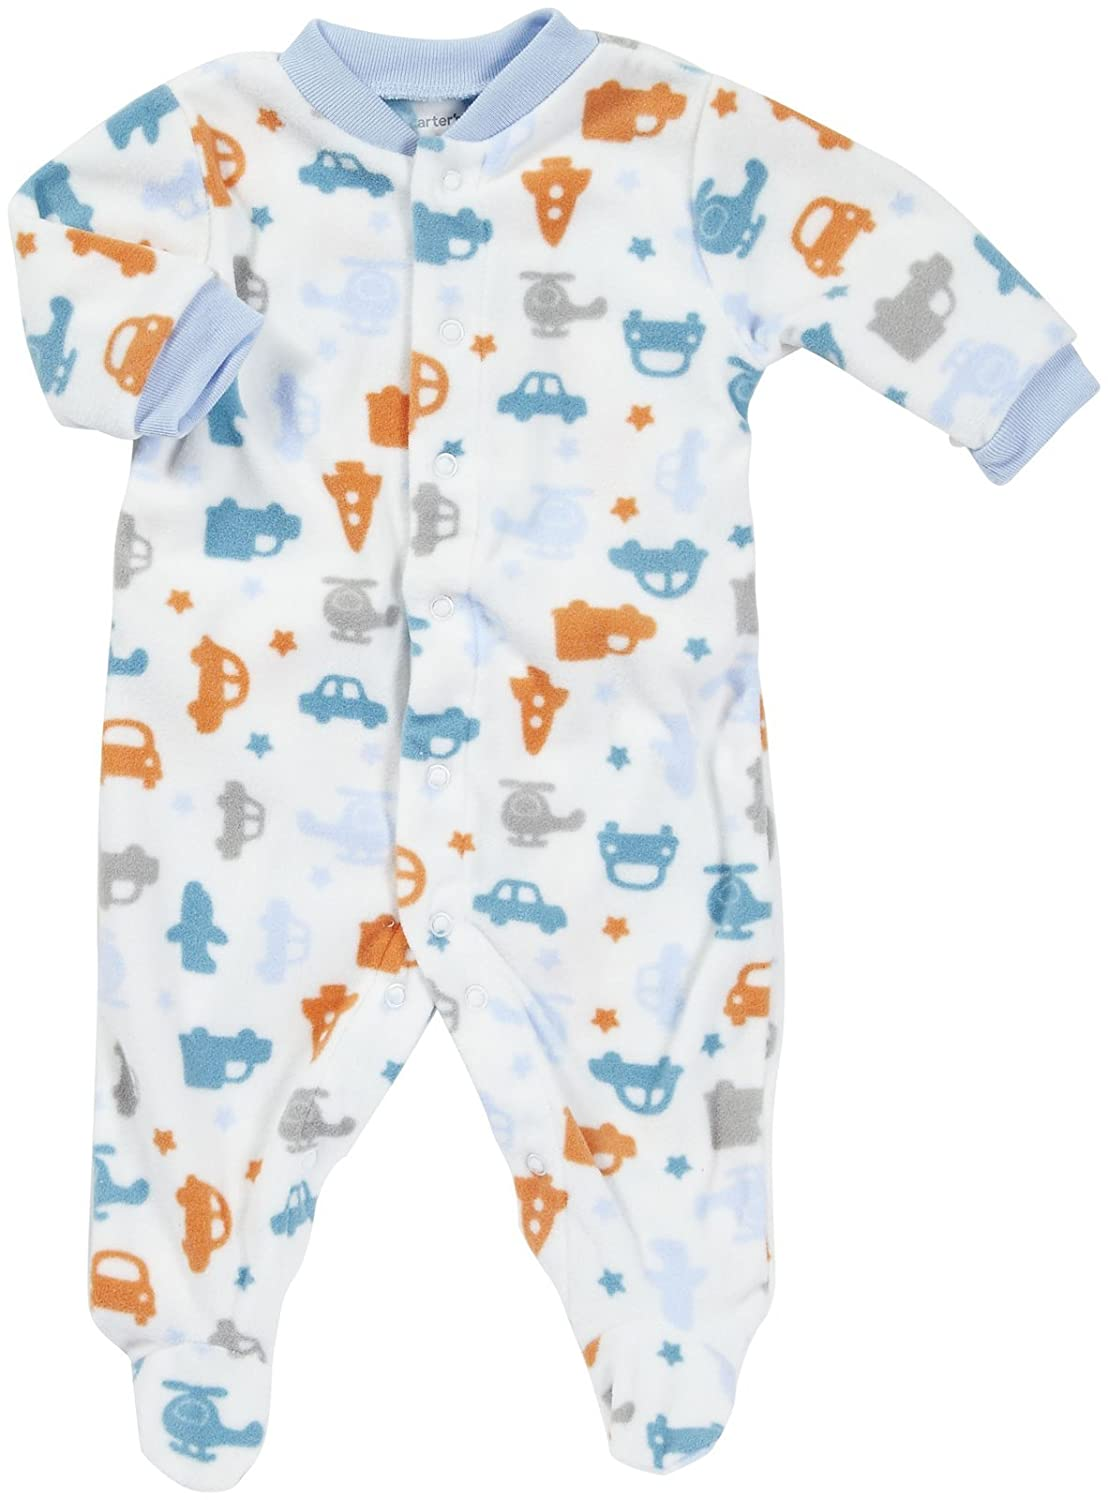 Carters Micro Snap 3 Months Multi Transportation